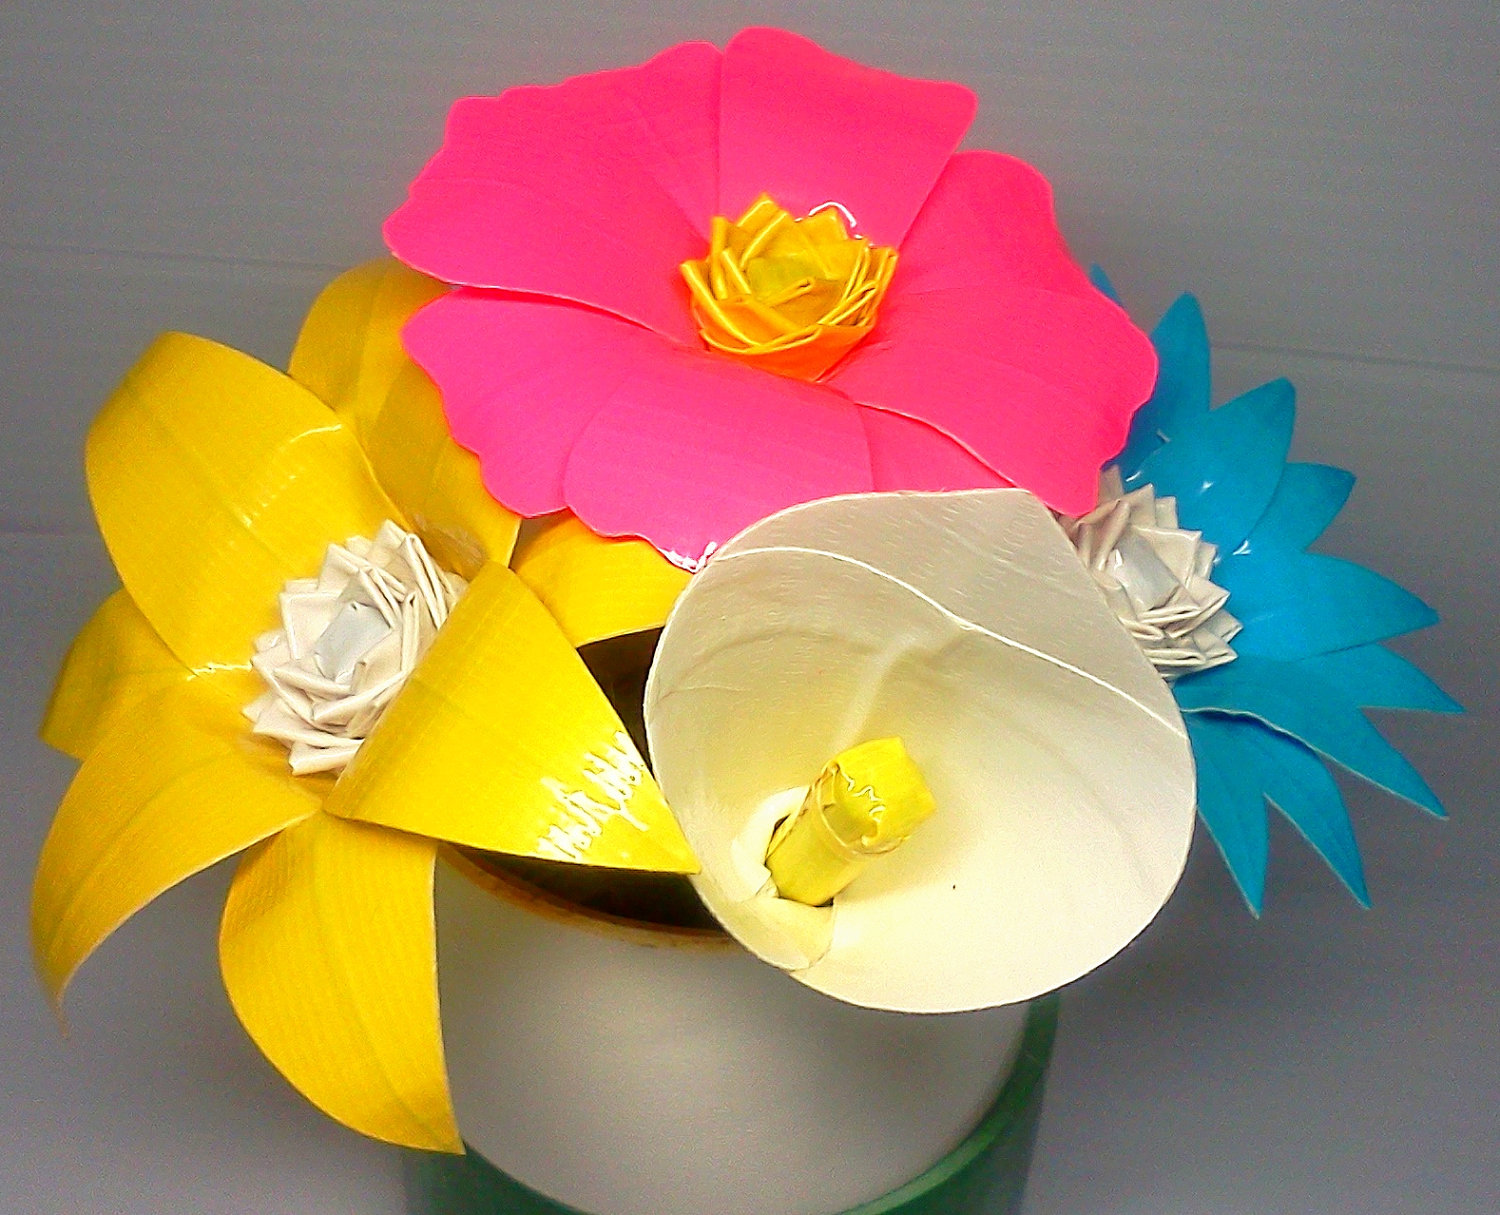 offbeat wedding ideas duct tape bridal bouquet roses eco